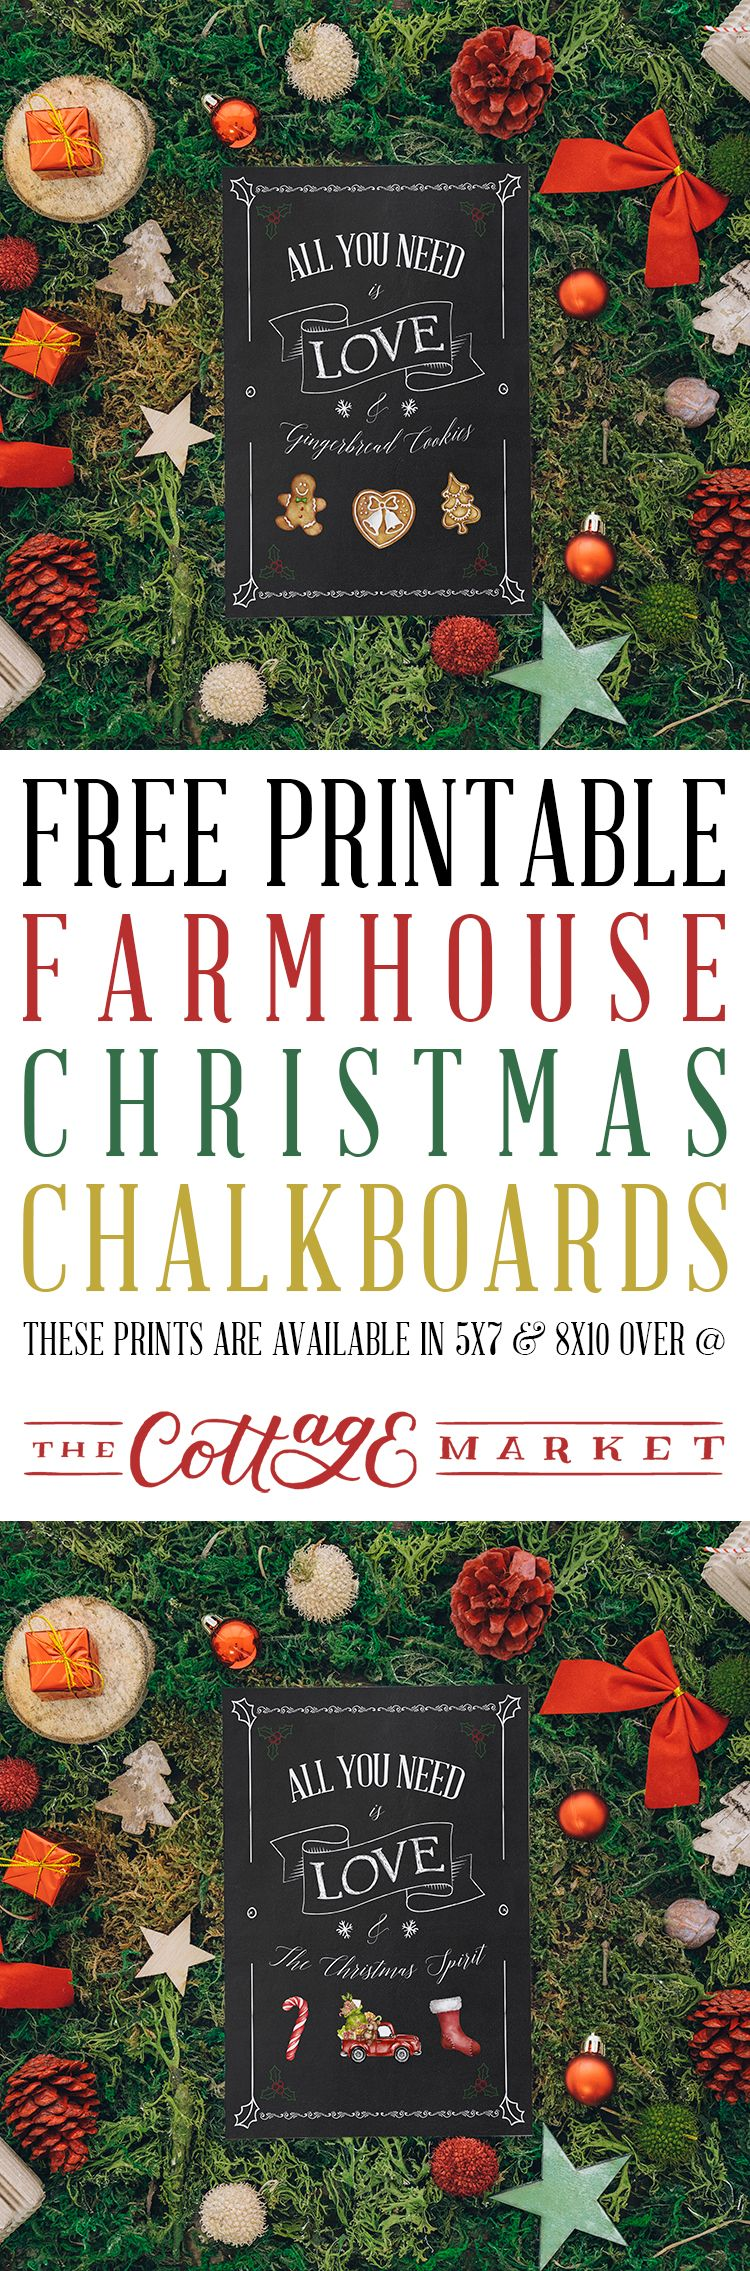 Free printable farmhouse christmas chalkboards christmas decorative paper crafts free printable farmhouse christmas chalkboards jeuxipadfo Images